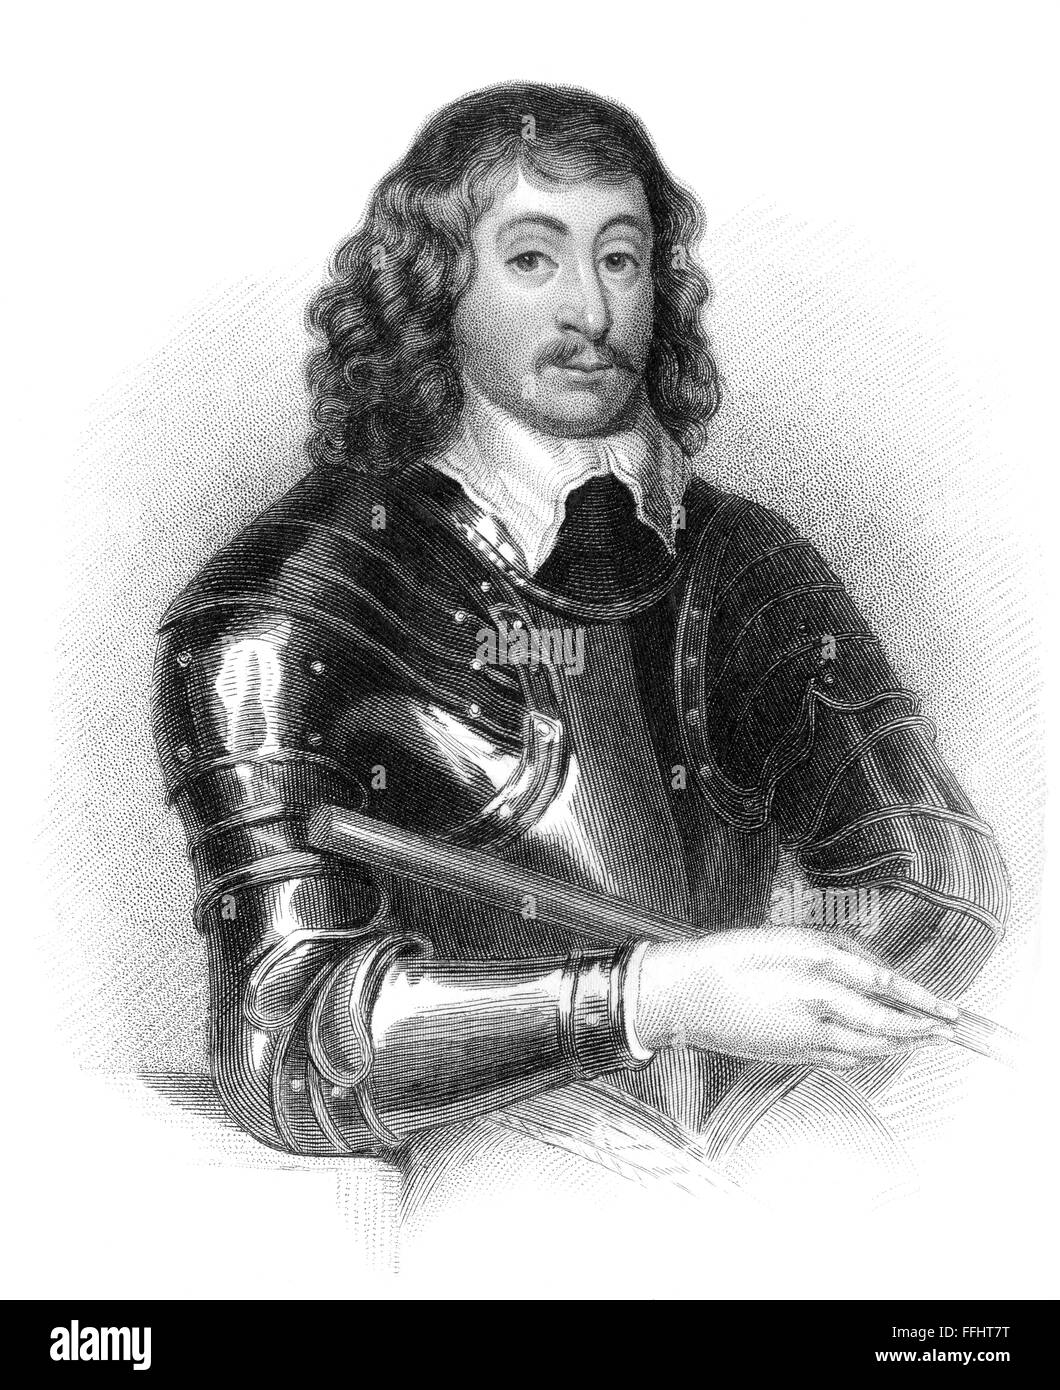 Spencer Compton, 2nd Earl of Northampton, Lord Compton, 1601-1643, an English soldier and politician - Stock Image